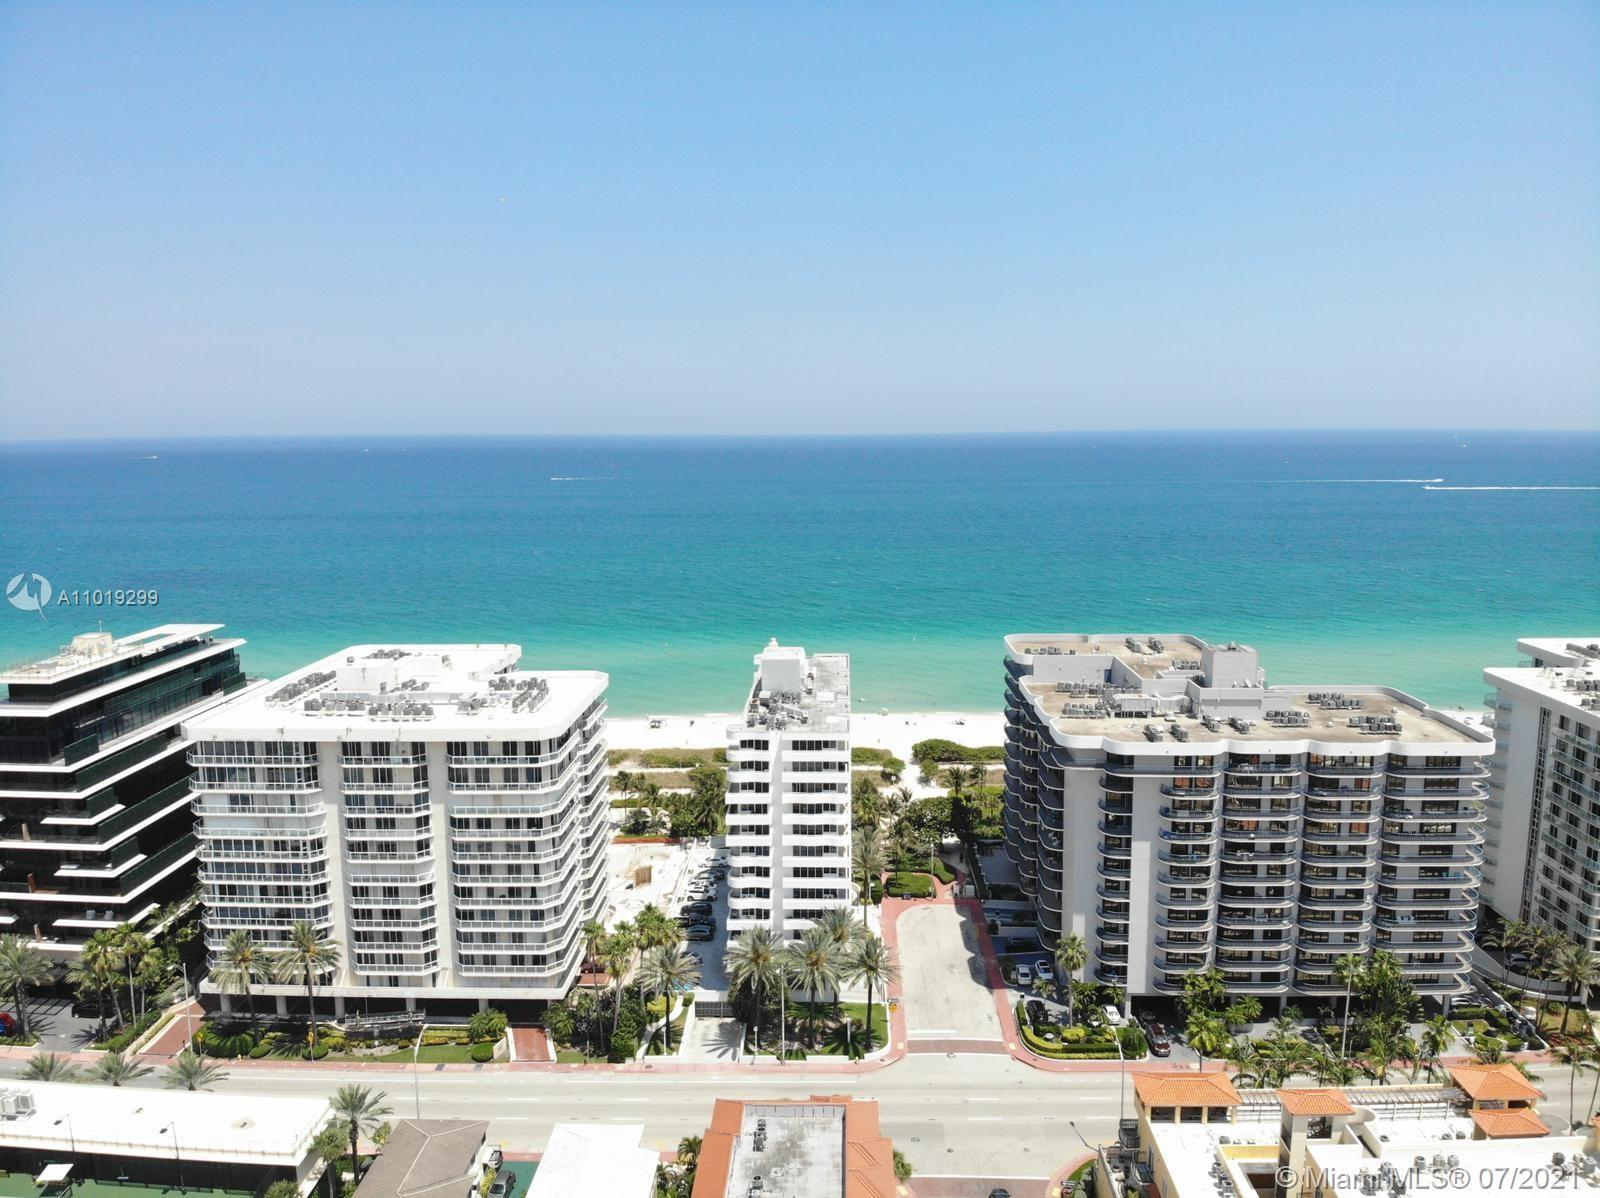 Spectacular beach front unit at Rimini Beach located in renowned Sursfide area. Unit features new fl